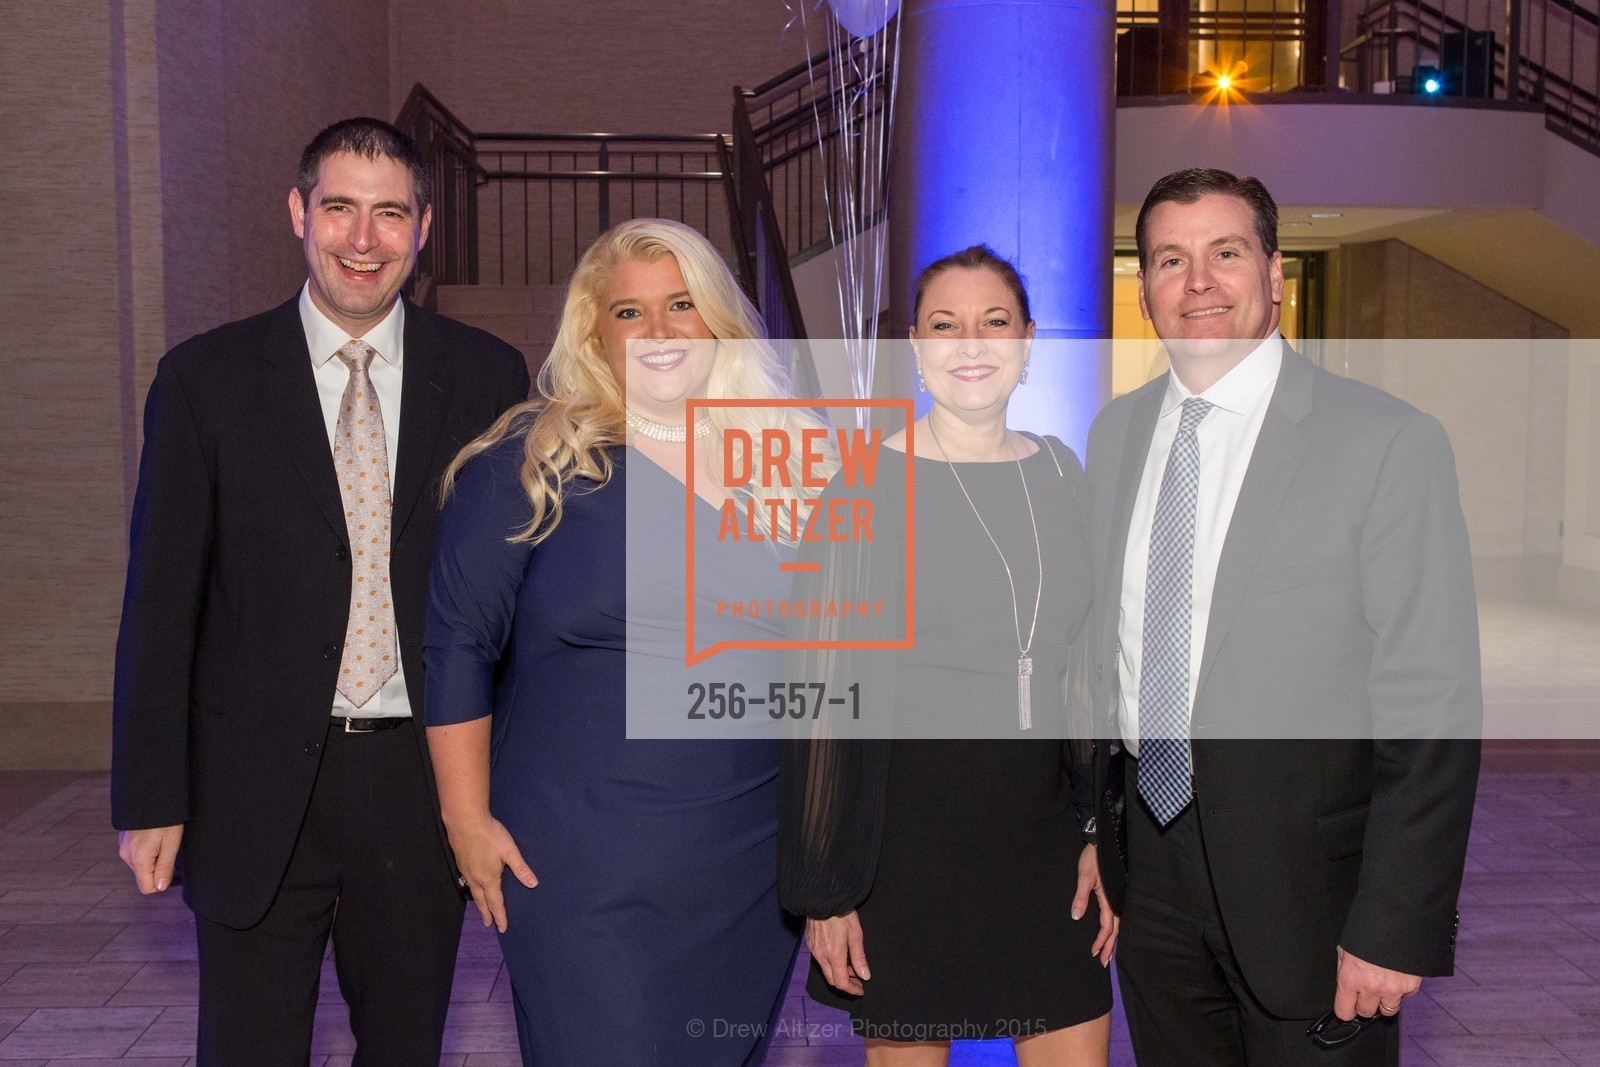 Richard Riter, Tara Childress, Danny Lancaster, Keith Russ, Cirque du Soiree 2015, The Bentley Reserve. 2525 Van Ness St, November 19th, 2015,Drew Altizer, Drew Altizer Photography, full-service agency, private events, San Francisco photographer, photographer california